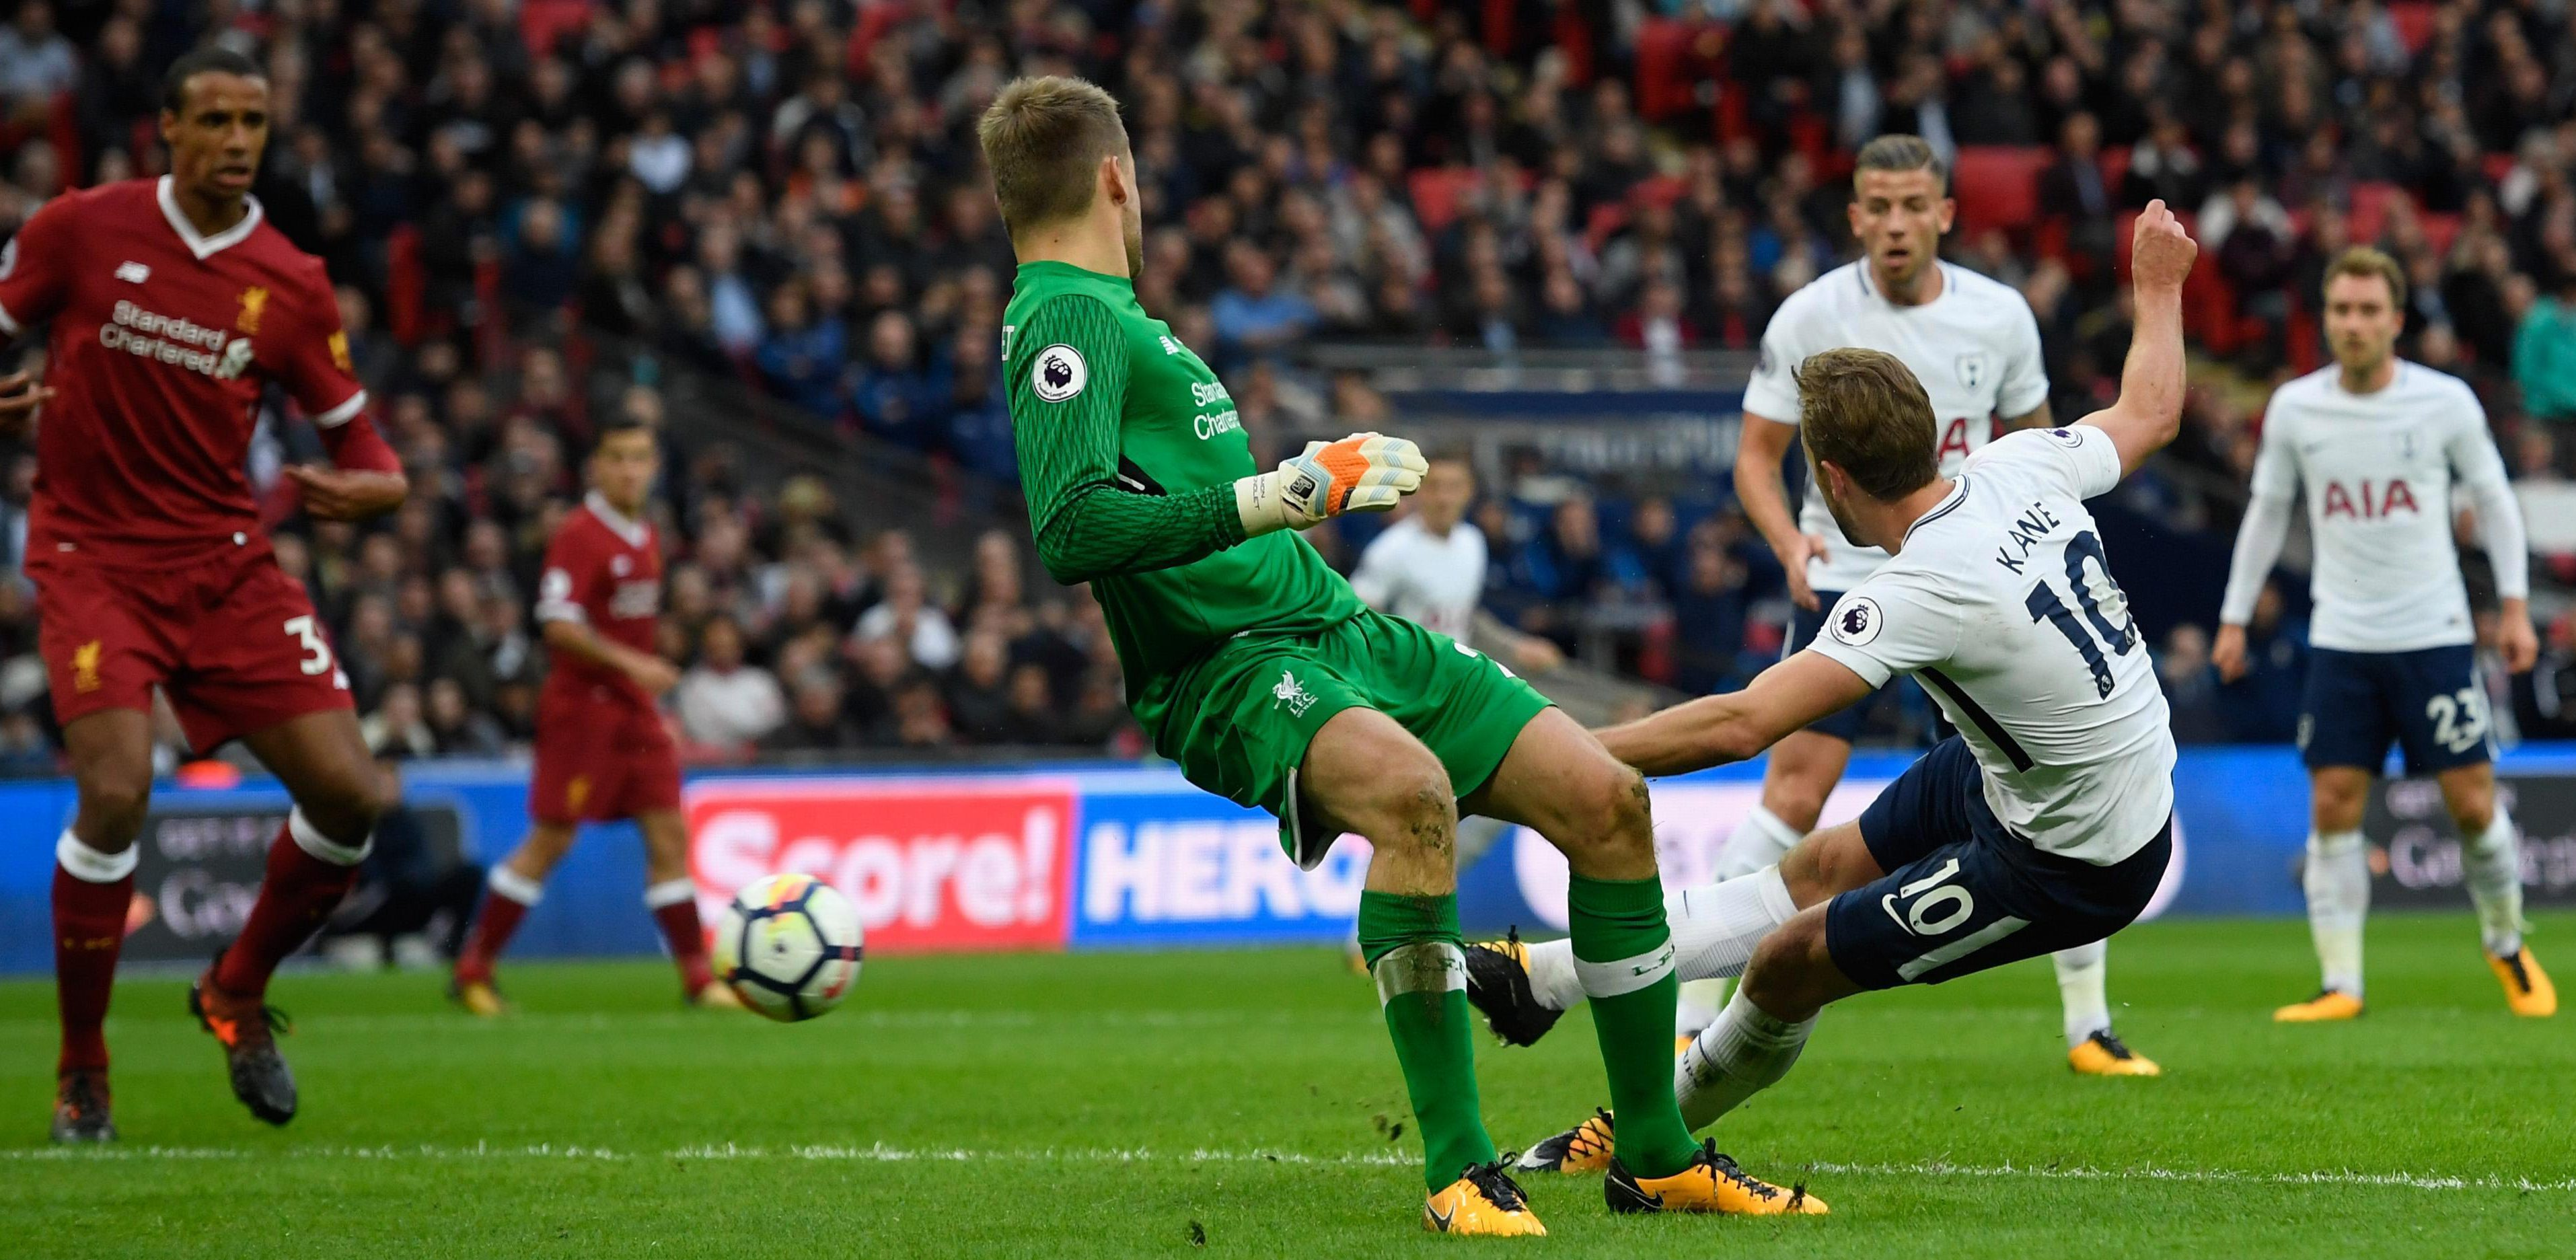 Harry Kane gives Liverpool the full treatment at Wembley